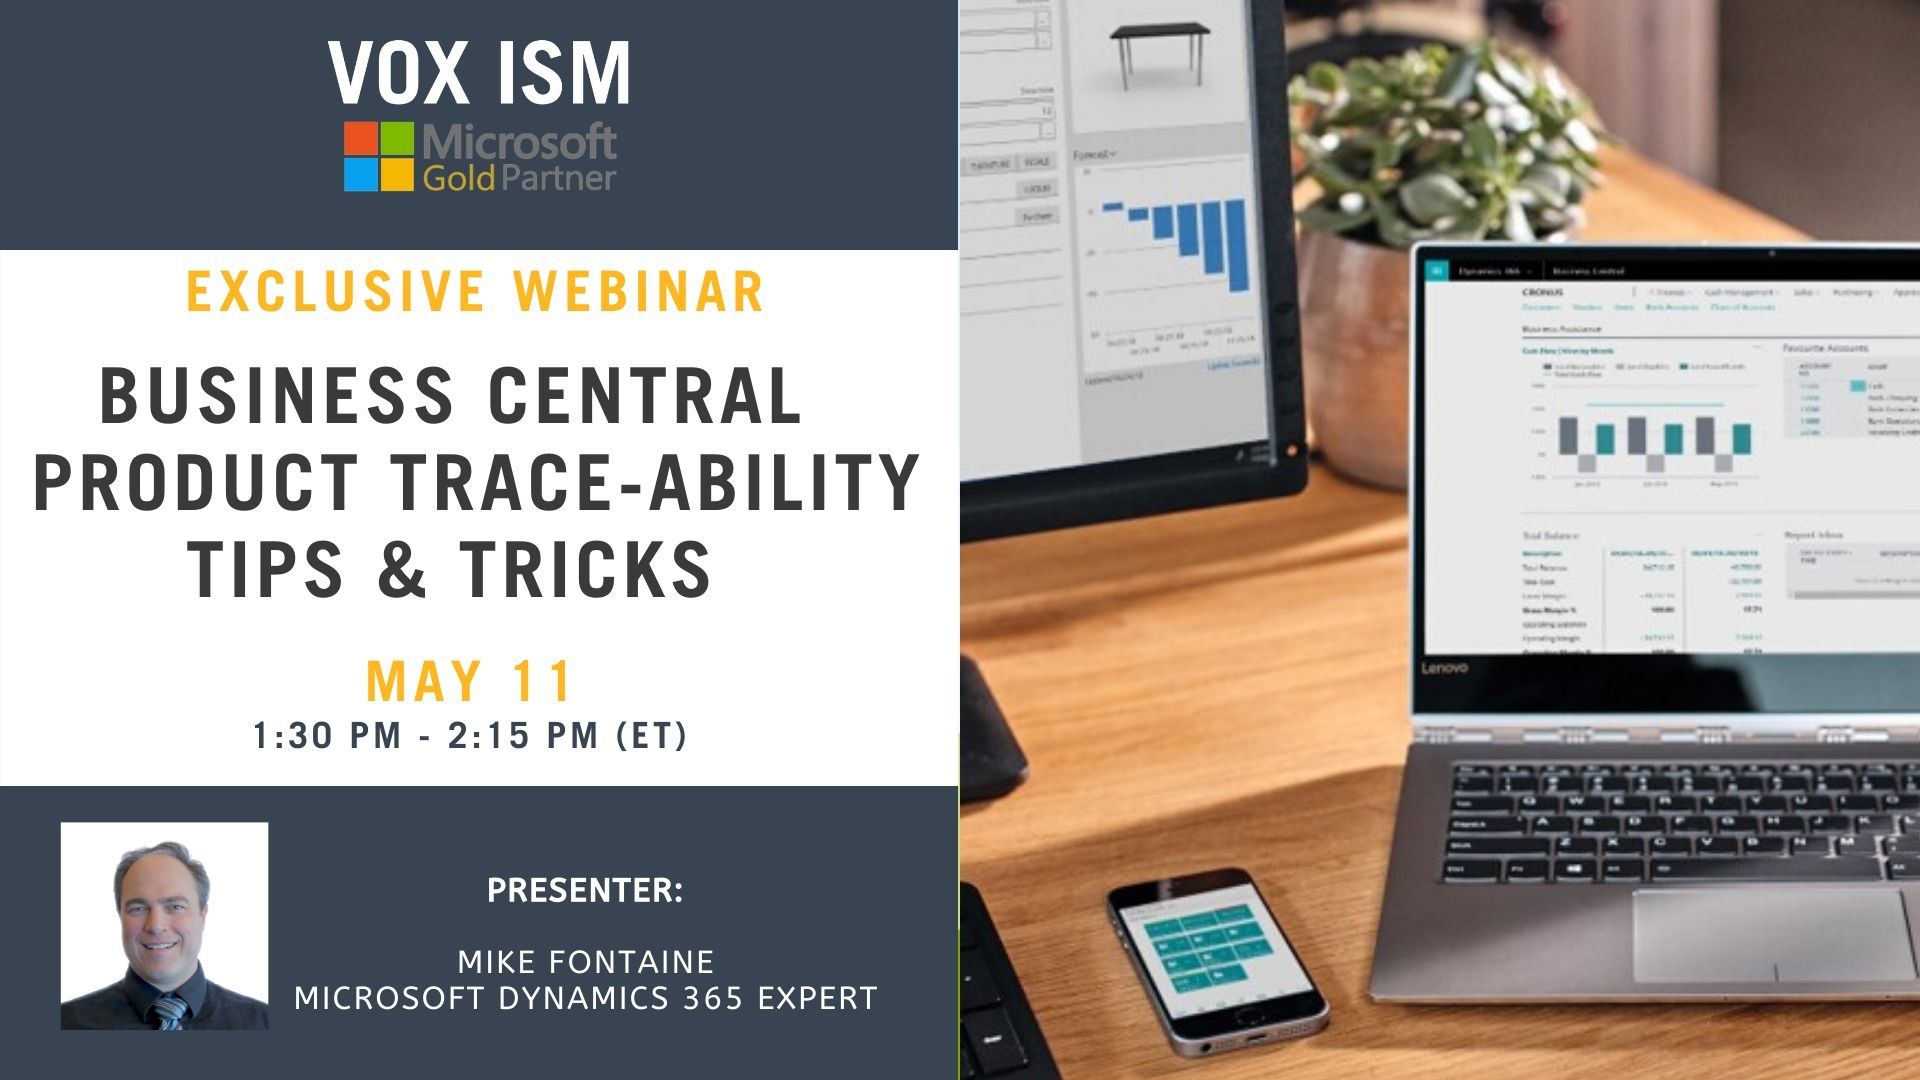 Business Central - Product Traceability Tips & Tricks - May 11 - Webinar VOX ISM